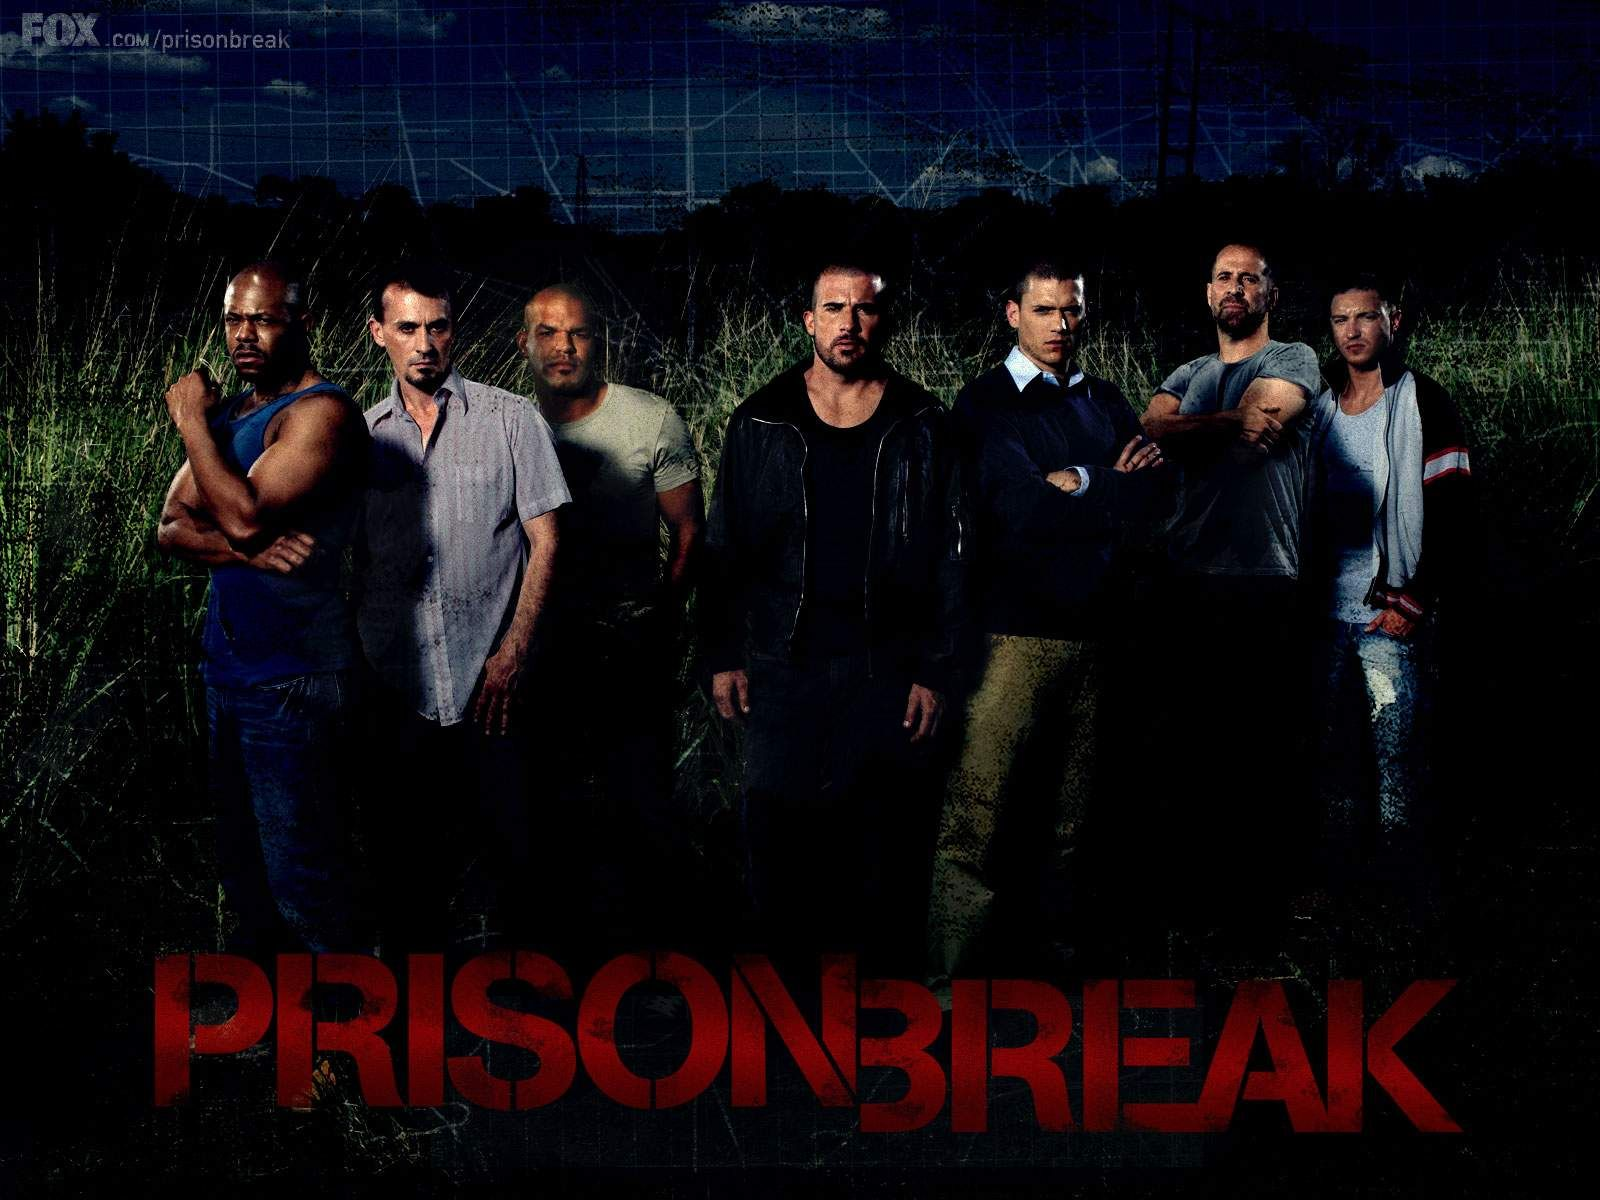 Top America Tv Series Wall Art Large Poster Canvas Picture Prison Break Cast